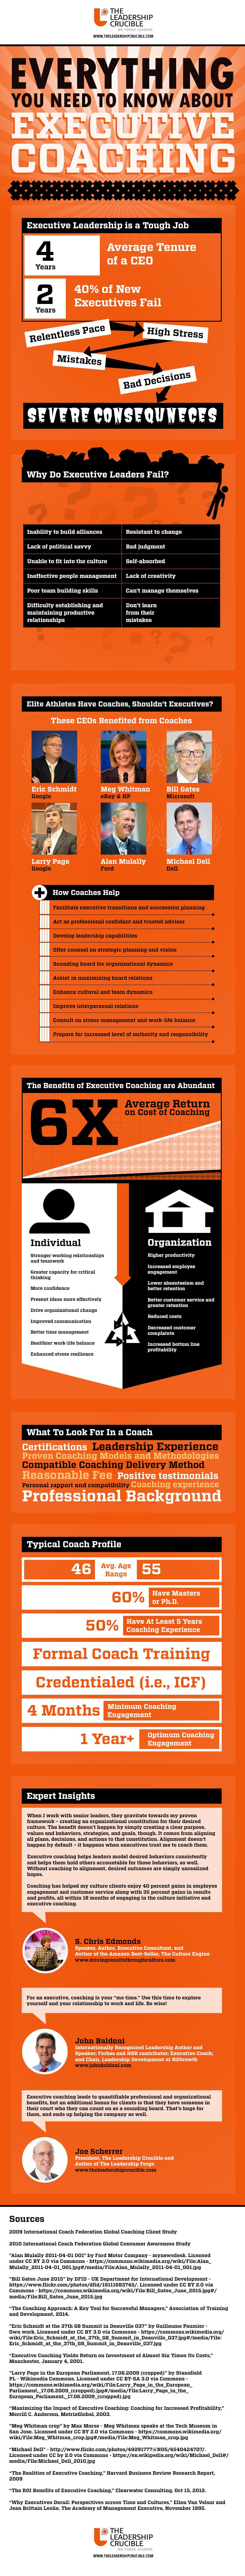 executive-integration-mega-infographic